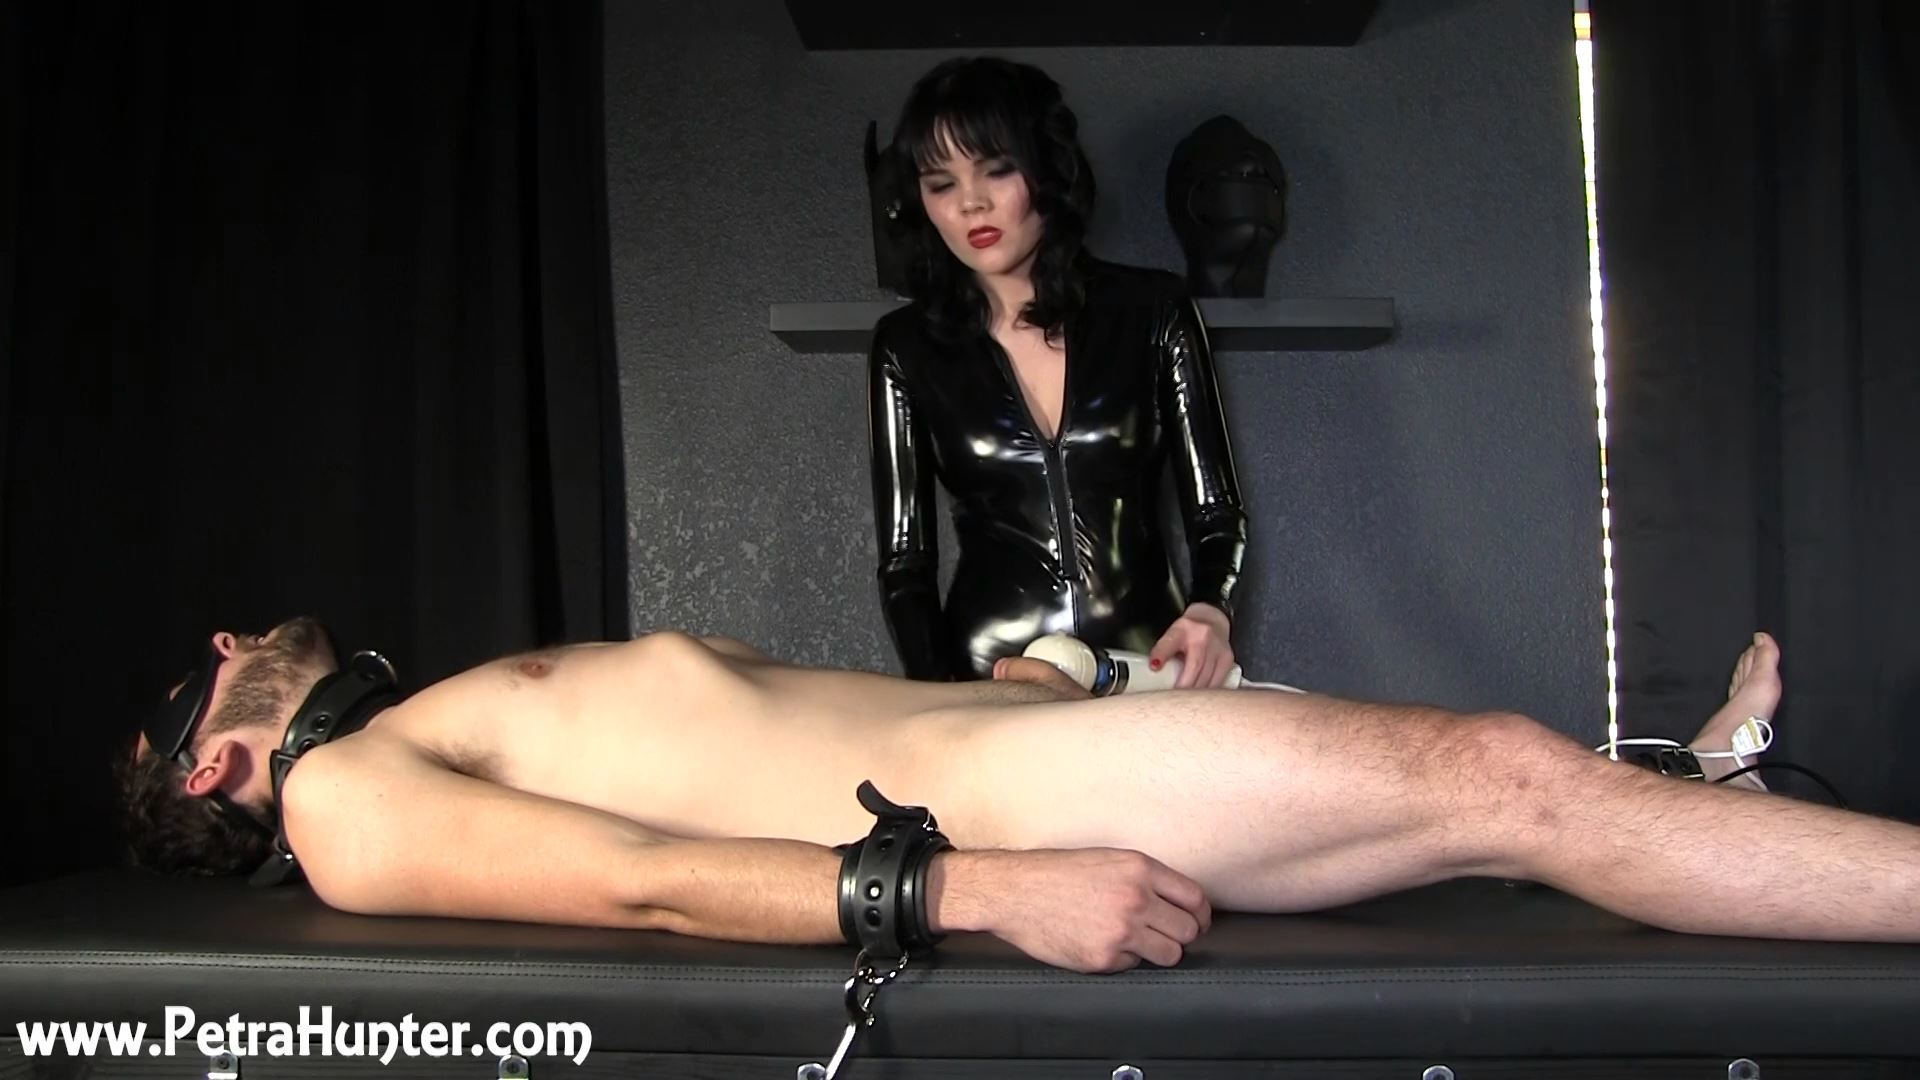 Mistress Petra Hunter In Scene: The Violet Wand Game - STREAMPETRA - FULL HD/1080p/MP4